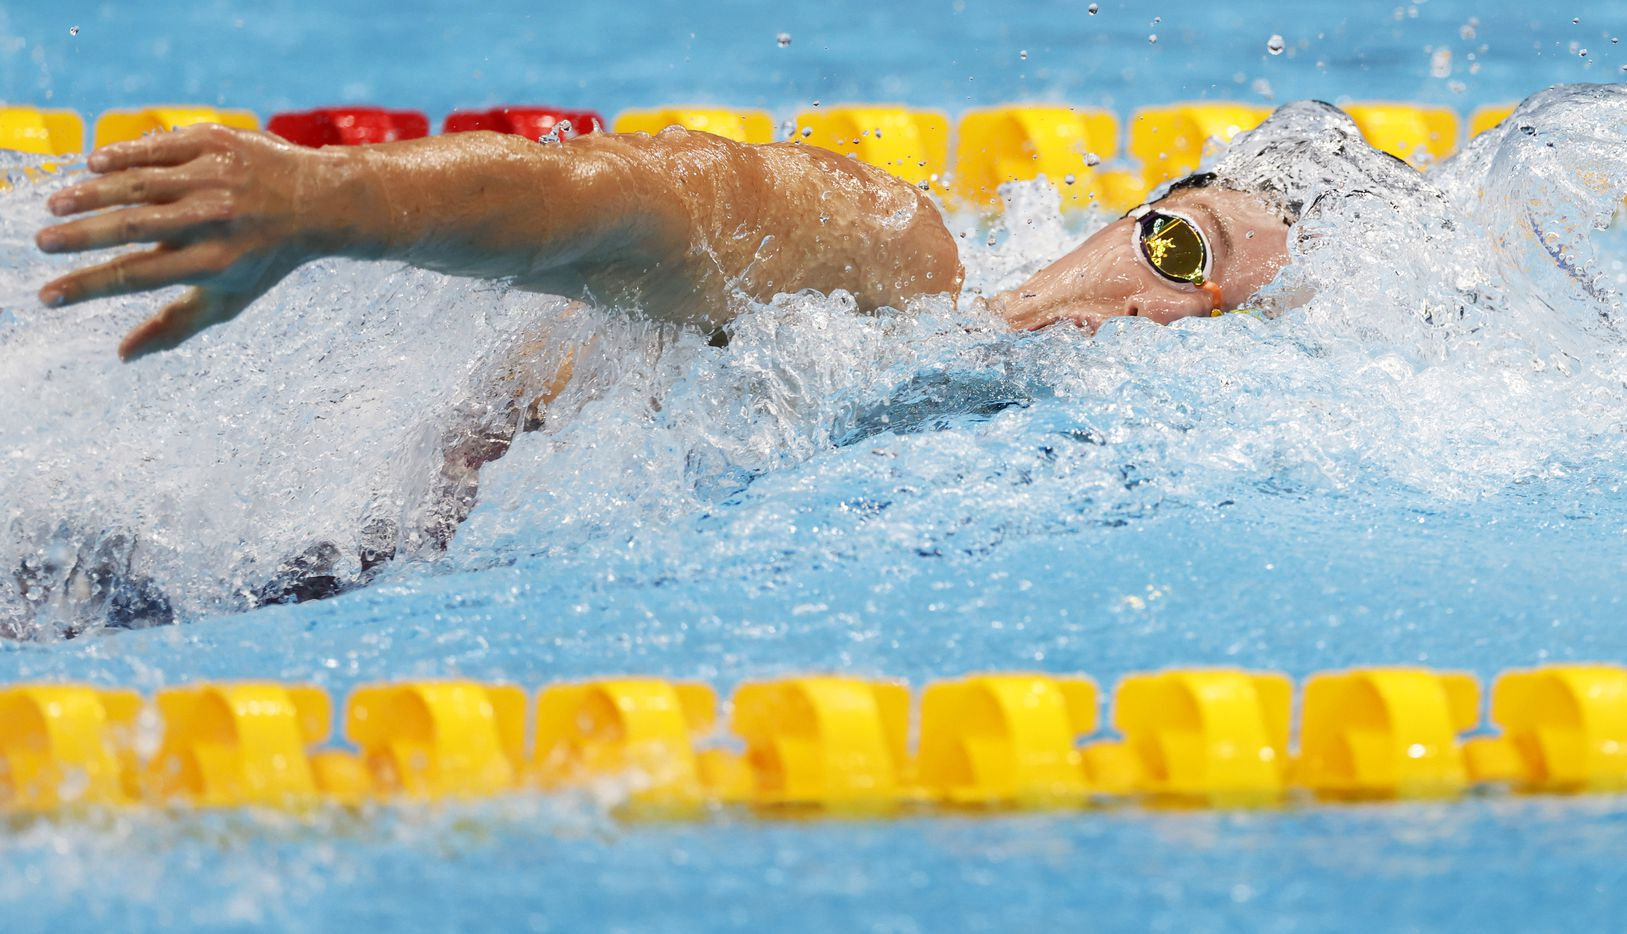 USA's Abbey Weitzeil competes in the women's 4x100 medley relay during the postponed 2020 Tokyo Olympics at Tokyo Aquatics Centre, on Sunday, August 1, 2021, in Tokyo, Japan. USA finished in second with a time of 3:51.60 to earn a silver medal. (Vernon Bryant/The Dallas Morning News)